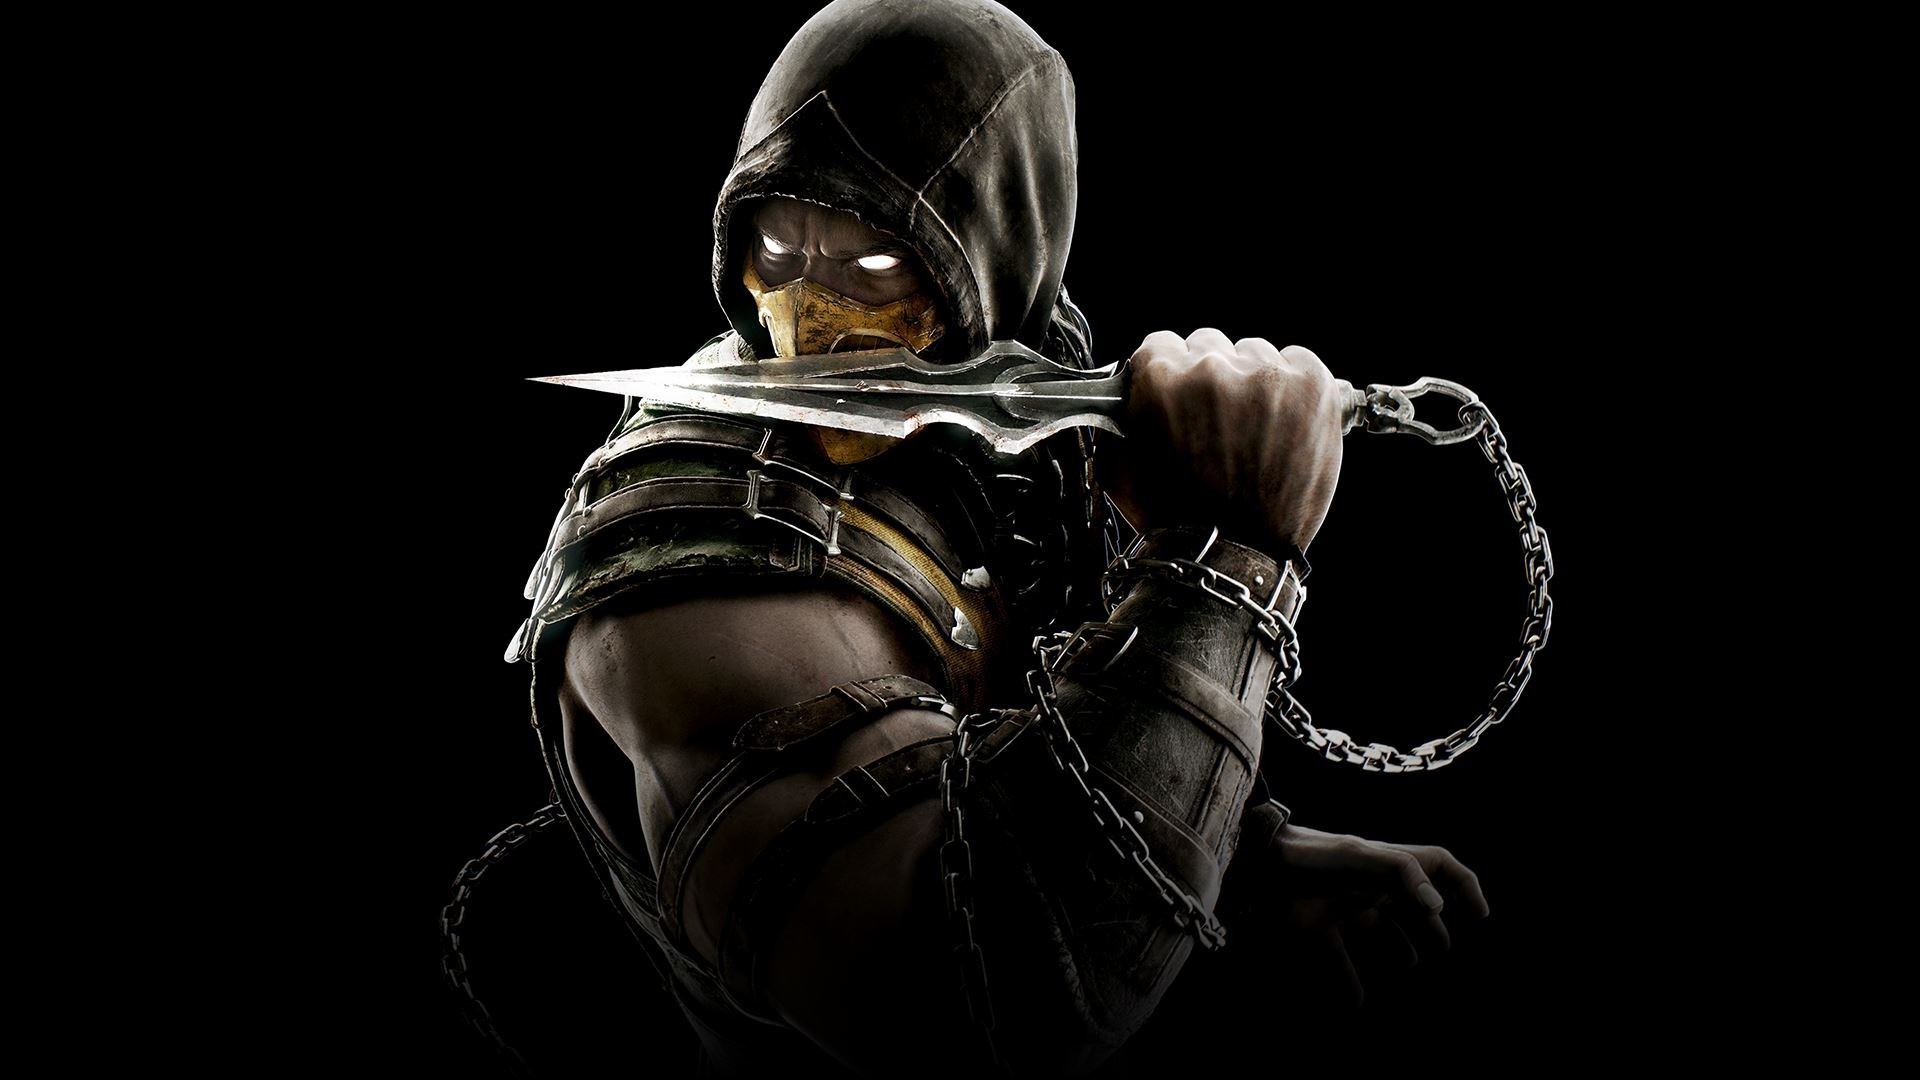 Mortal kombat 9 scorpion wallpaper wallpapertag - Mortal kombat scorpion wallpaper ...